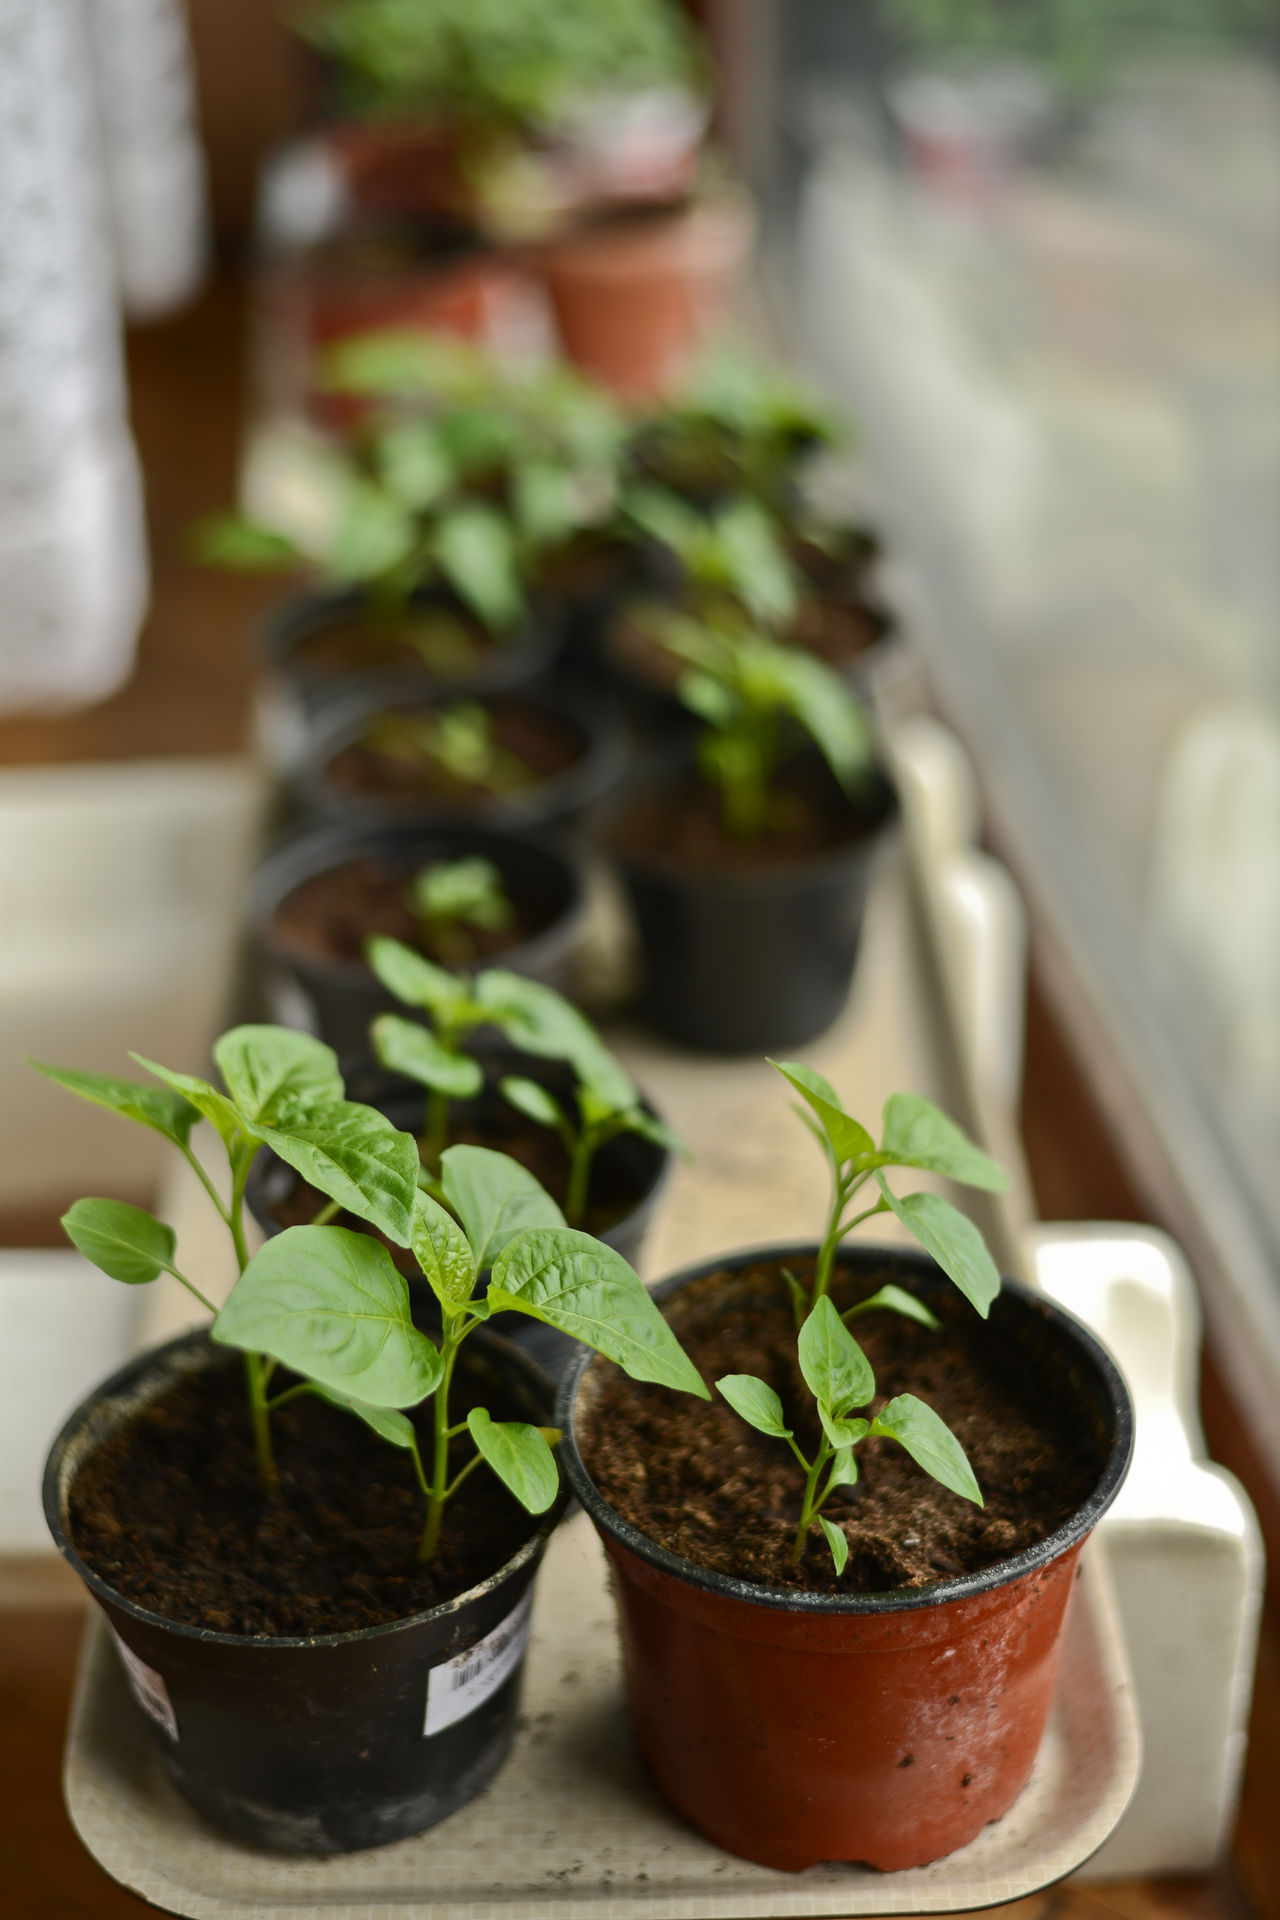 Agriculture Chilli Chilli Plant Chilli Plants Chilli Sapling Chilli Saplings Close-up Farming Farming Vegetables Focus On Foreground Freshness Green Growth Growth Hot Peppers Hot Peppers Plants Nature Pepper Plant Pepper Sapling Plant Plant Plants Sapling Saplings Selective Focus